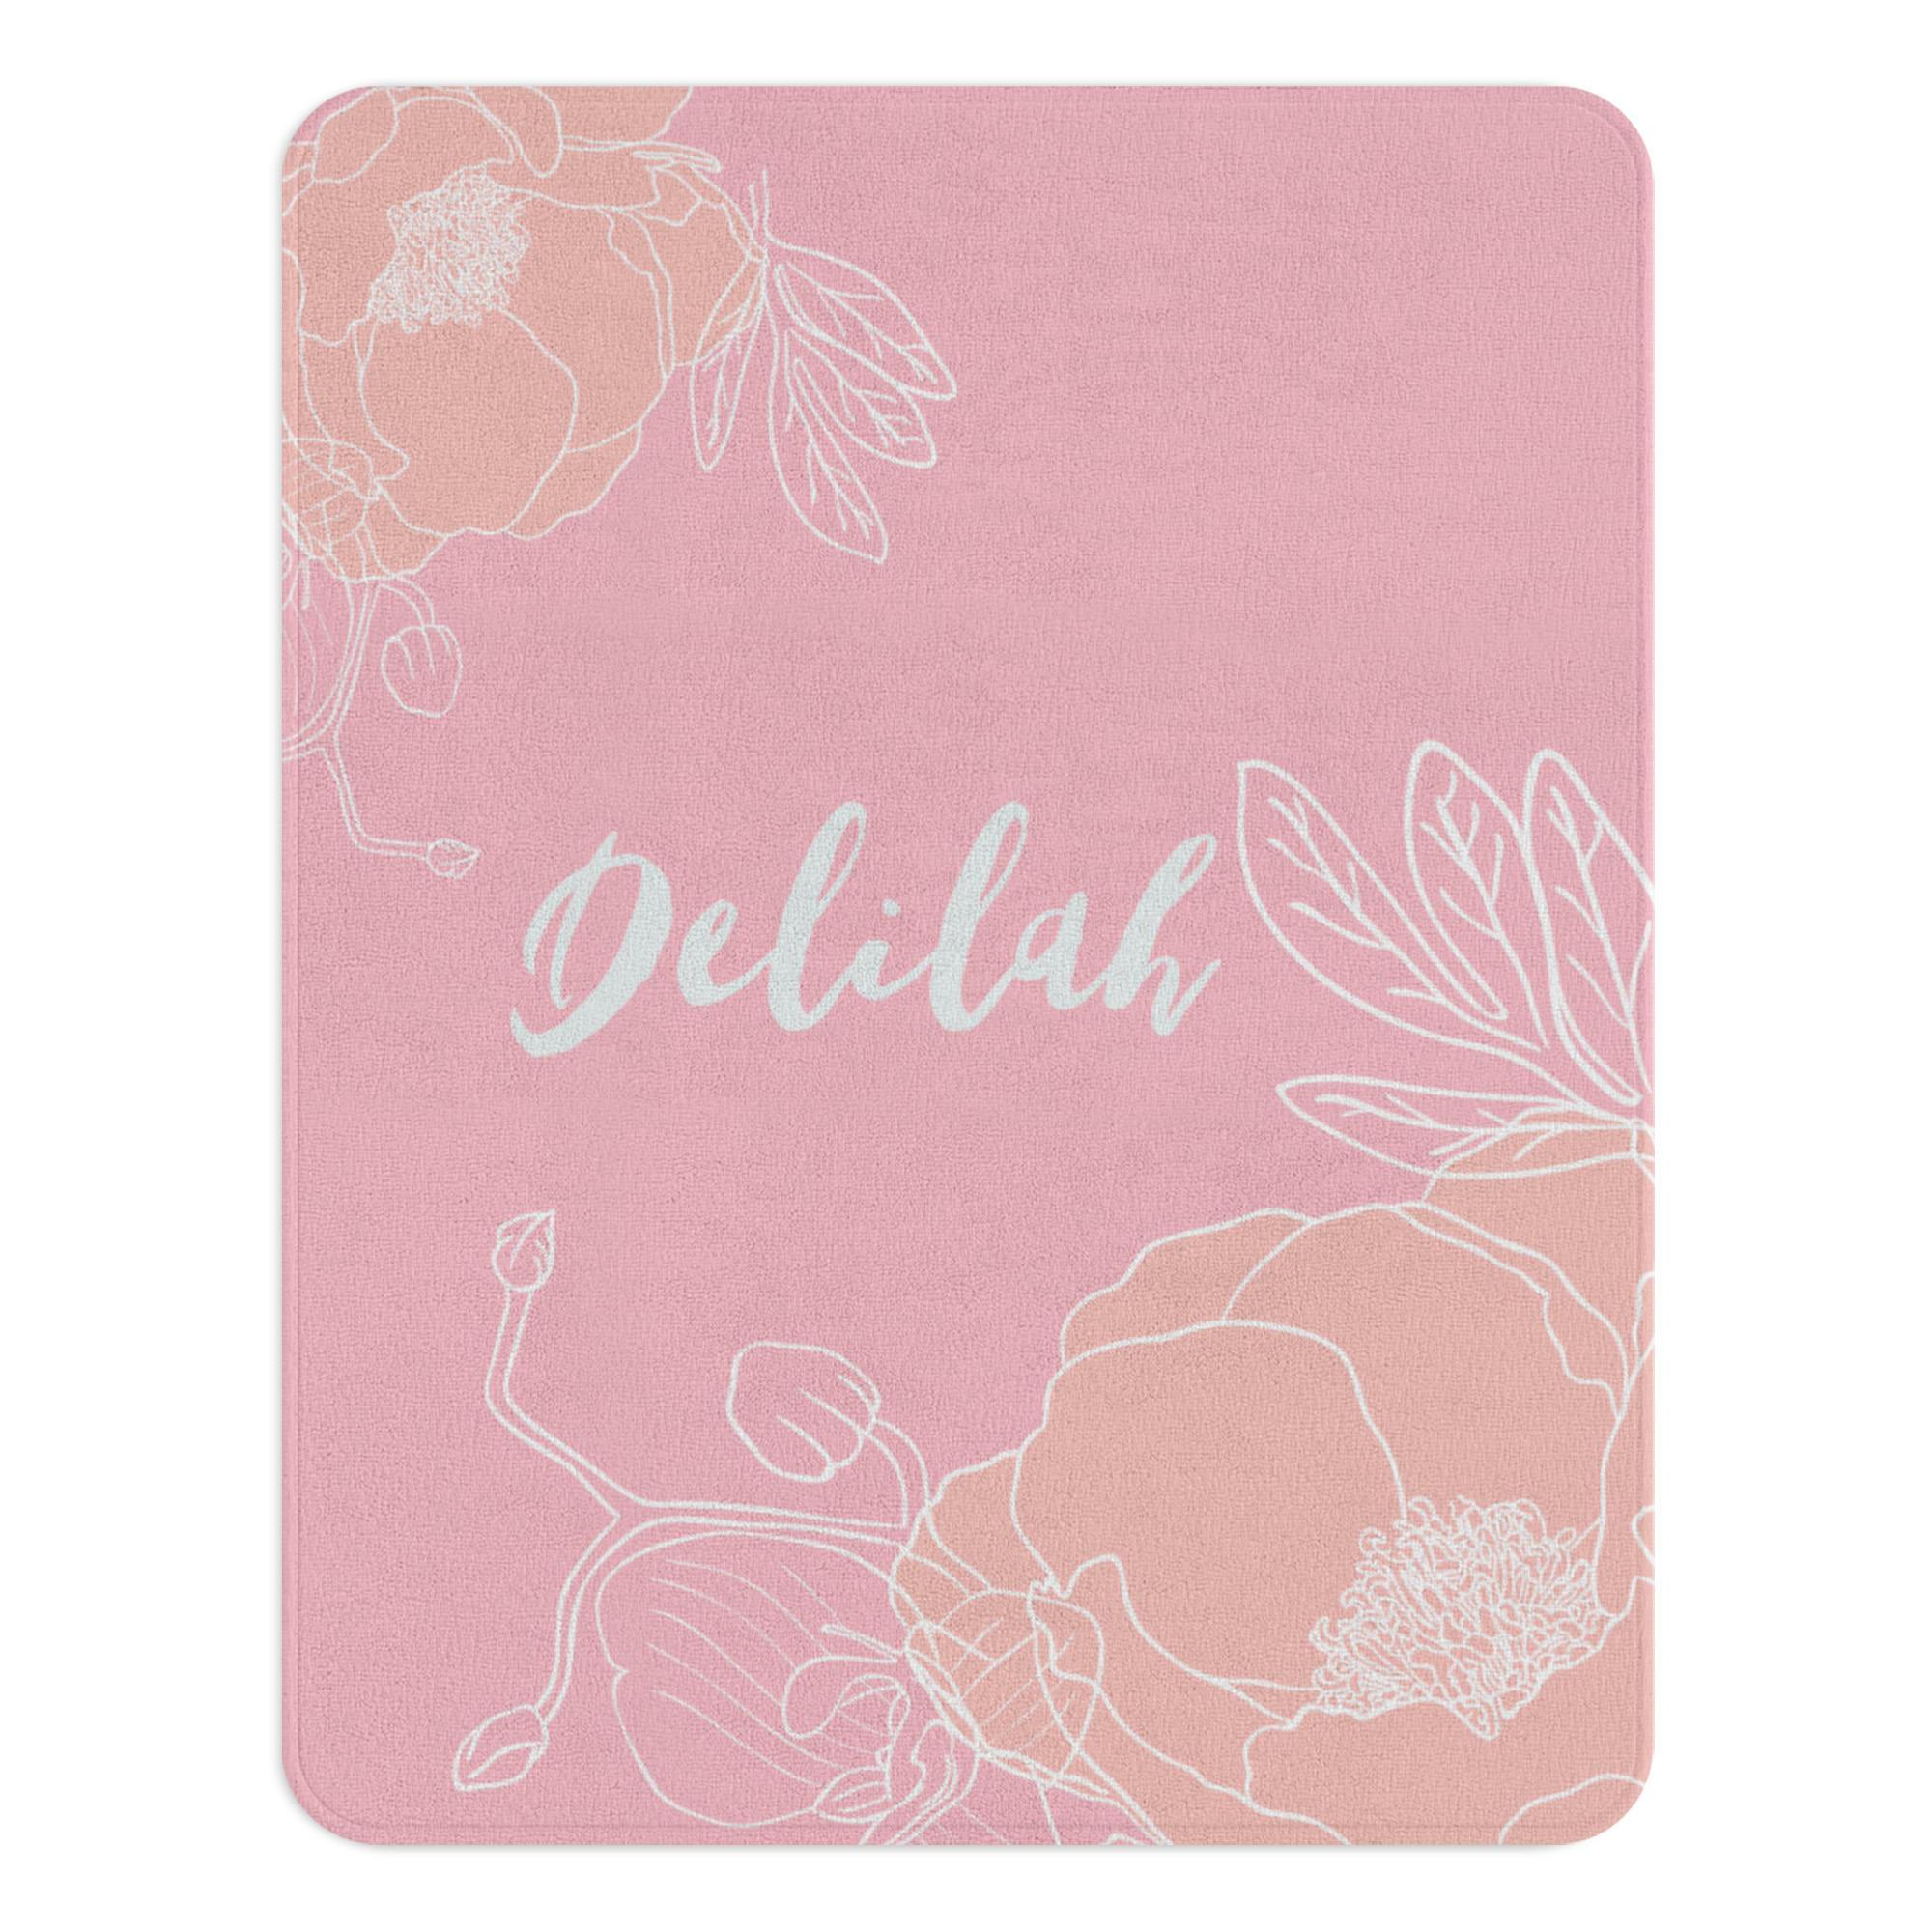 A pink floral rug with a blush flower illustration on diagonally opposite corners. The nursery rug also has a customized monogram in the center.